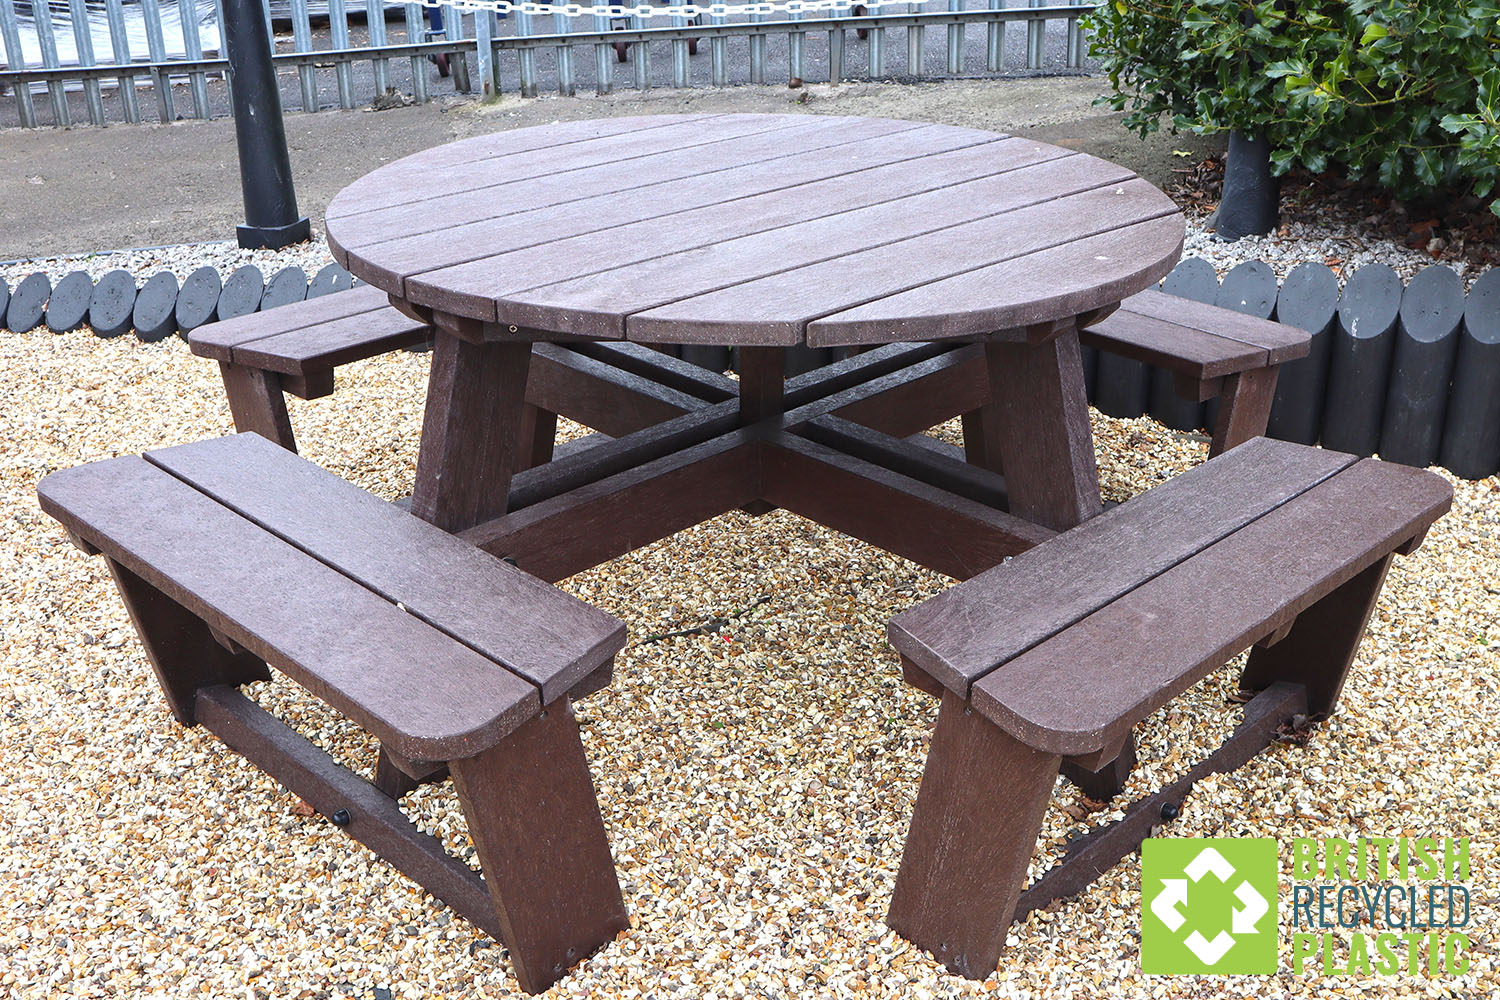 Eight seater Calder table delivery price drop Recycled plastic round Calder picnic table